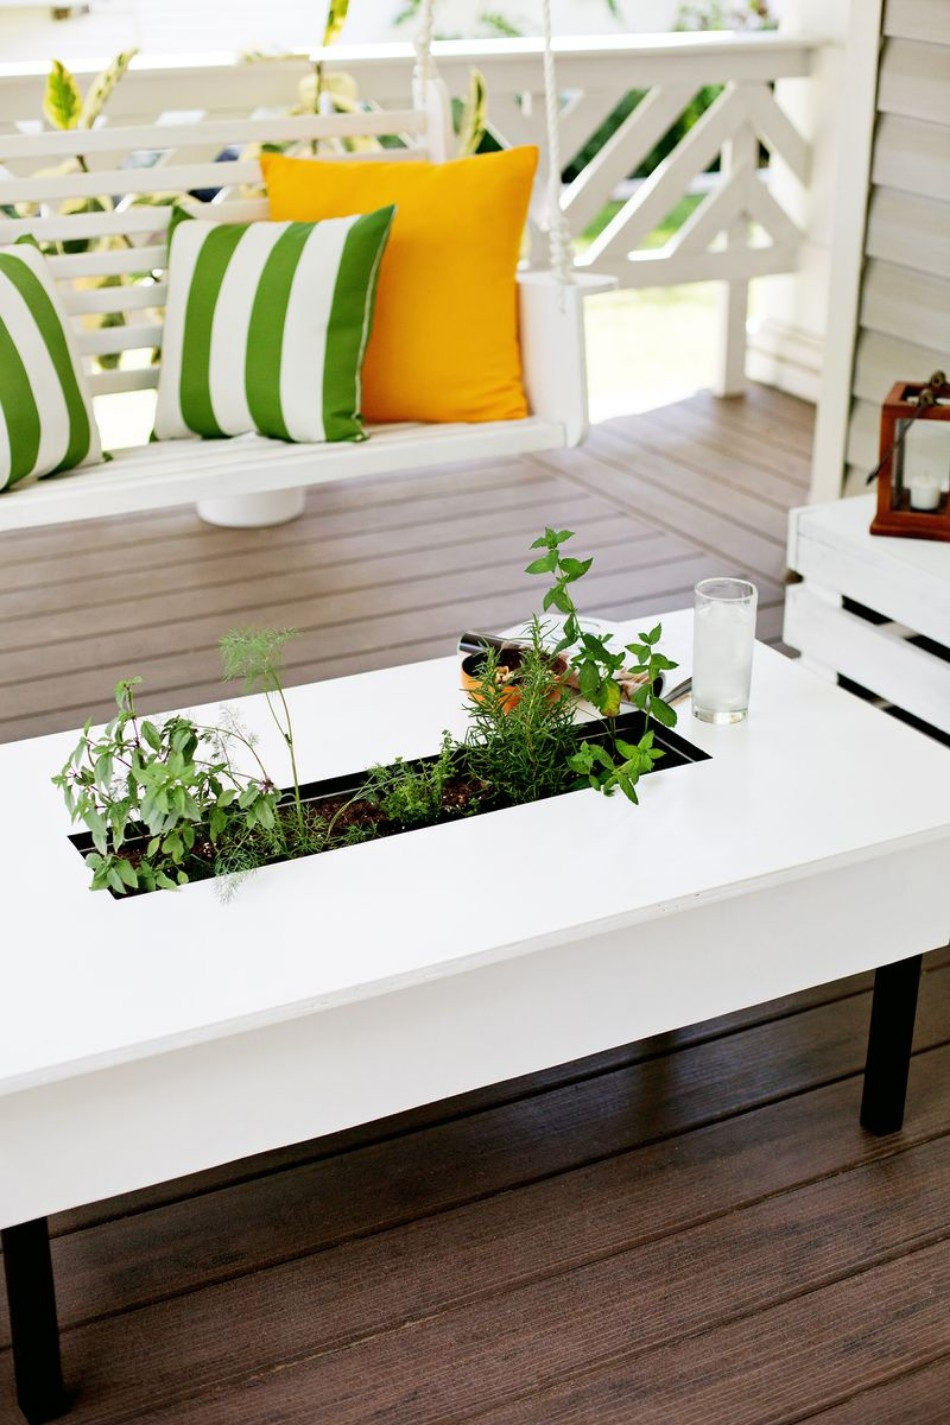 Coffee table Summer Trends: Have a Garden Inside Your Coffee Table 6a00d8358081ff69e201a511efe7e6970c 800wi